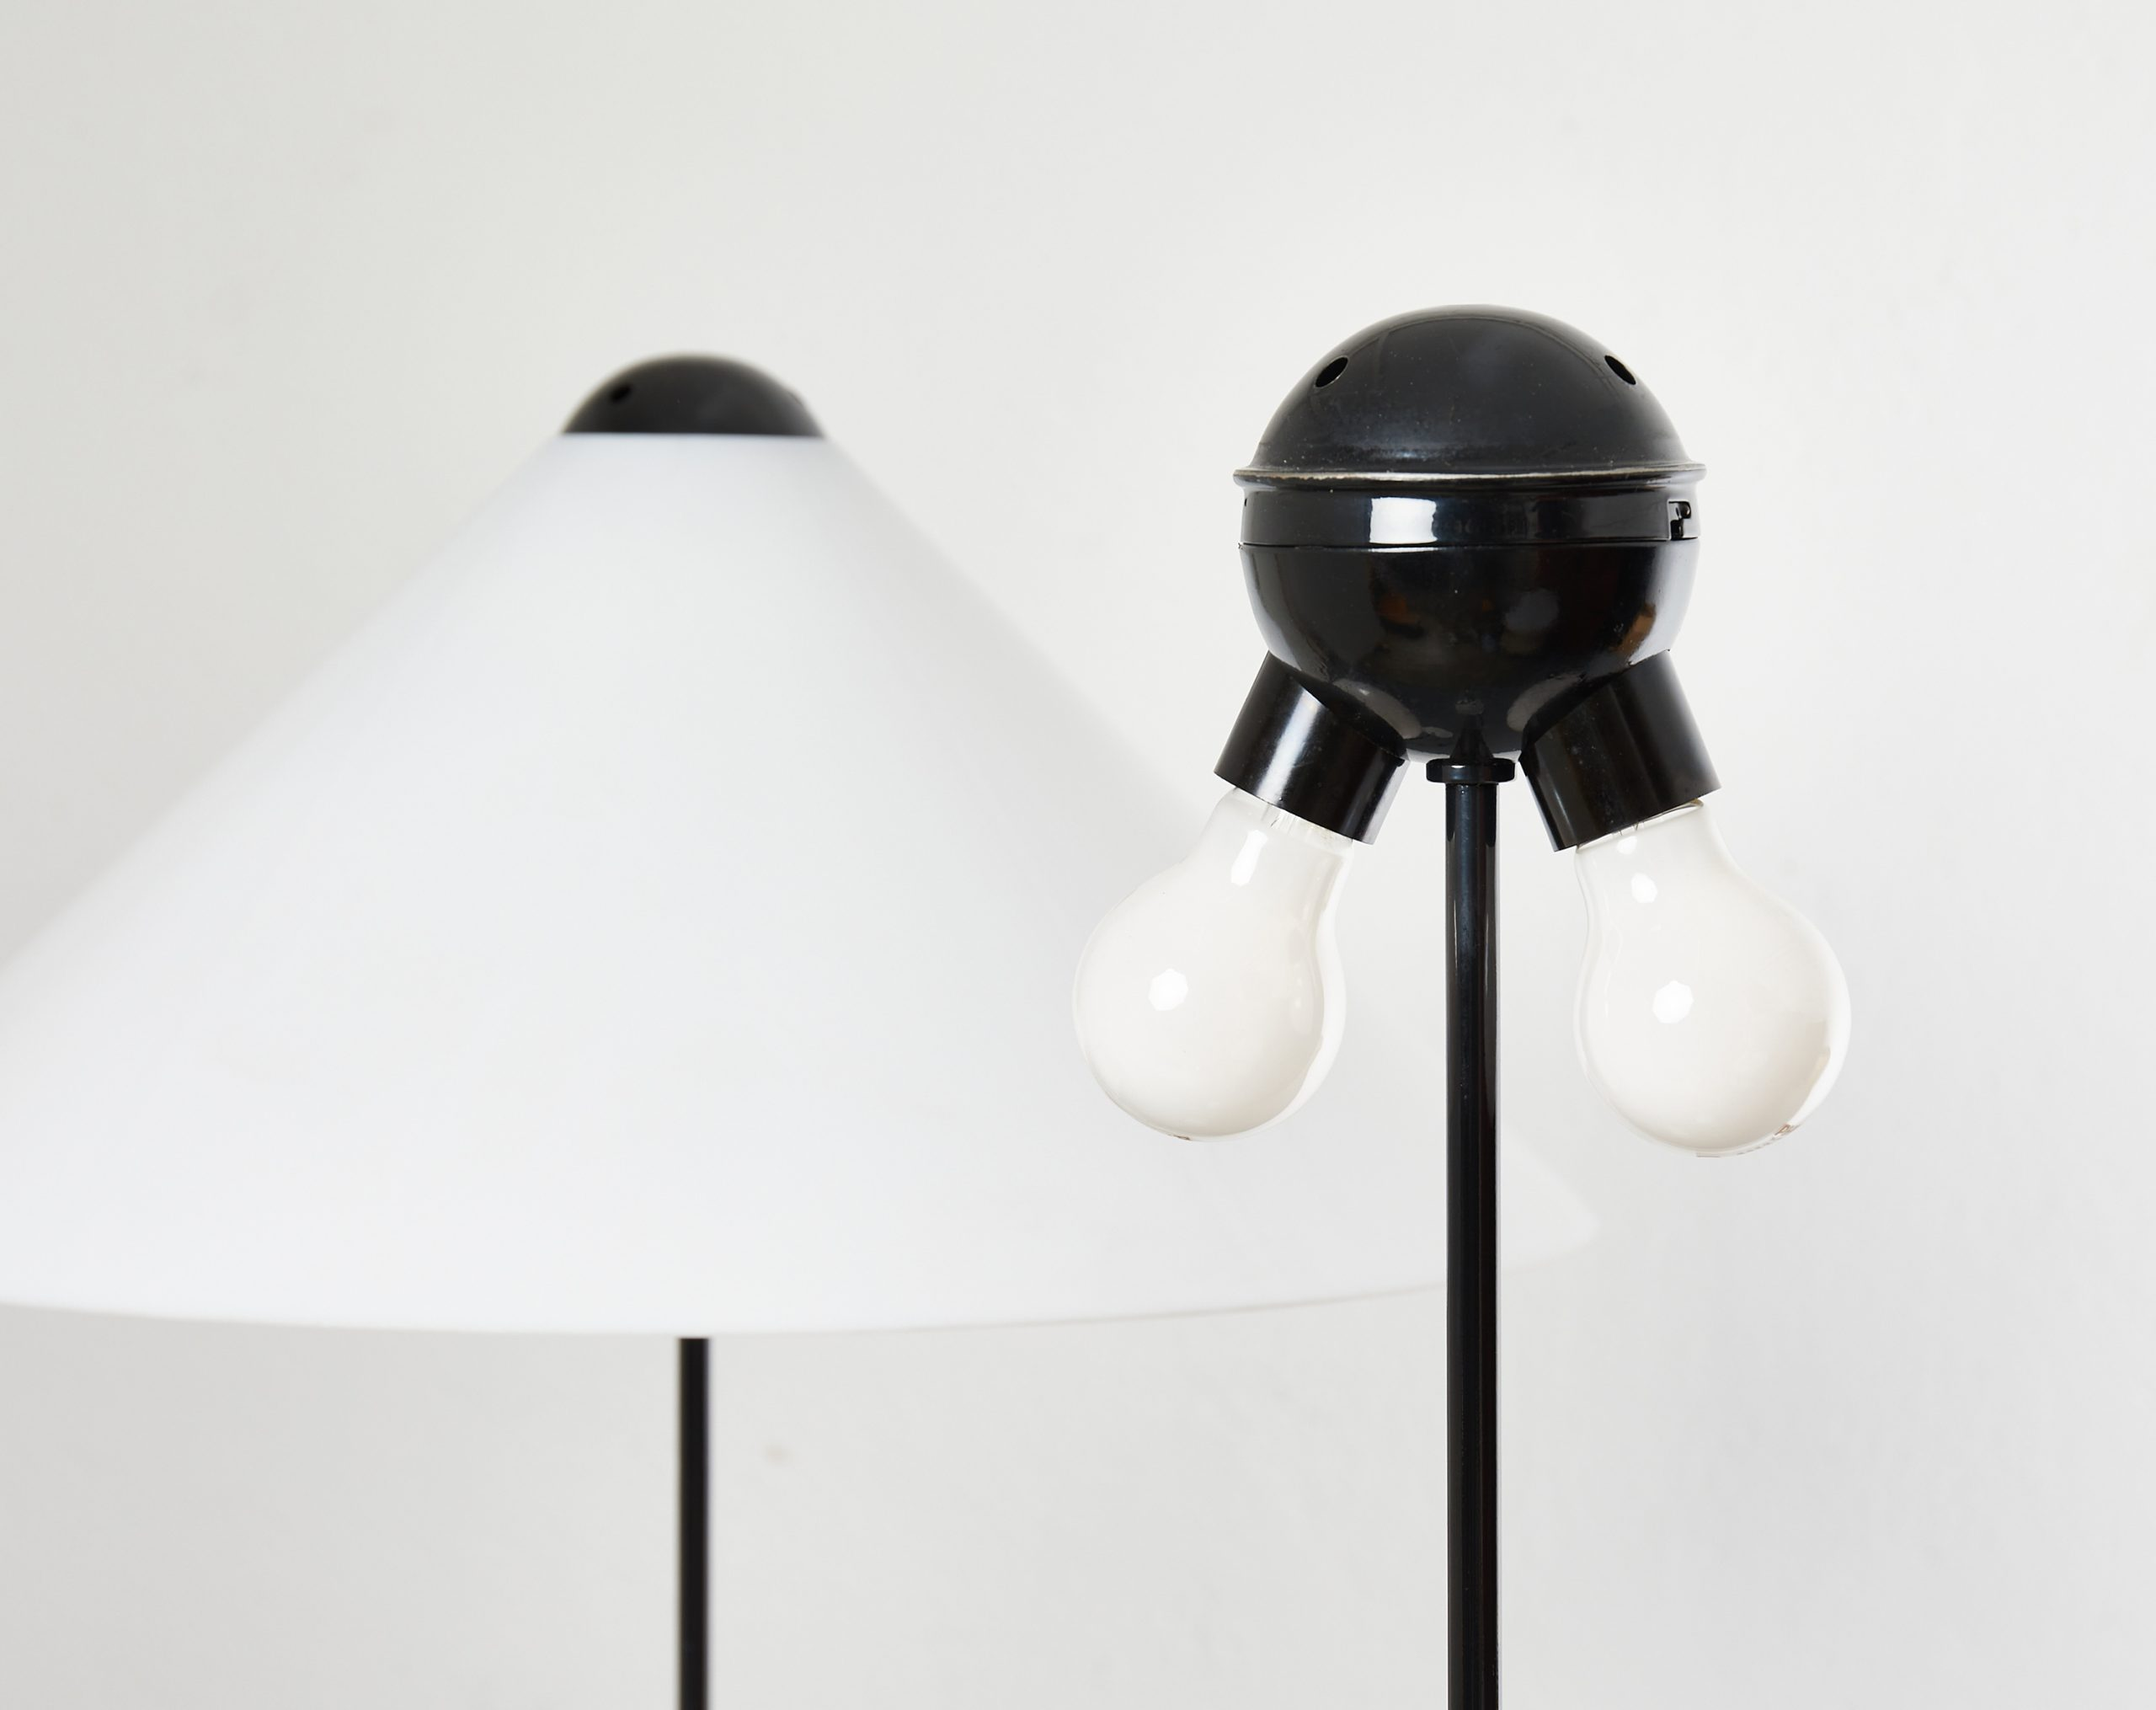 pair-of-snow-floor-lamps-by-vico-magistretti-oluce-1973-image-05